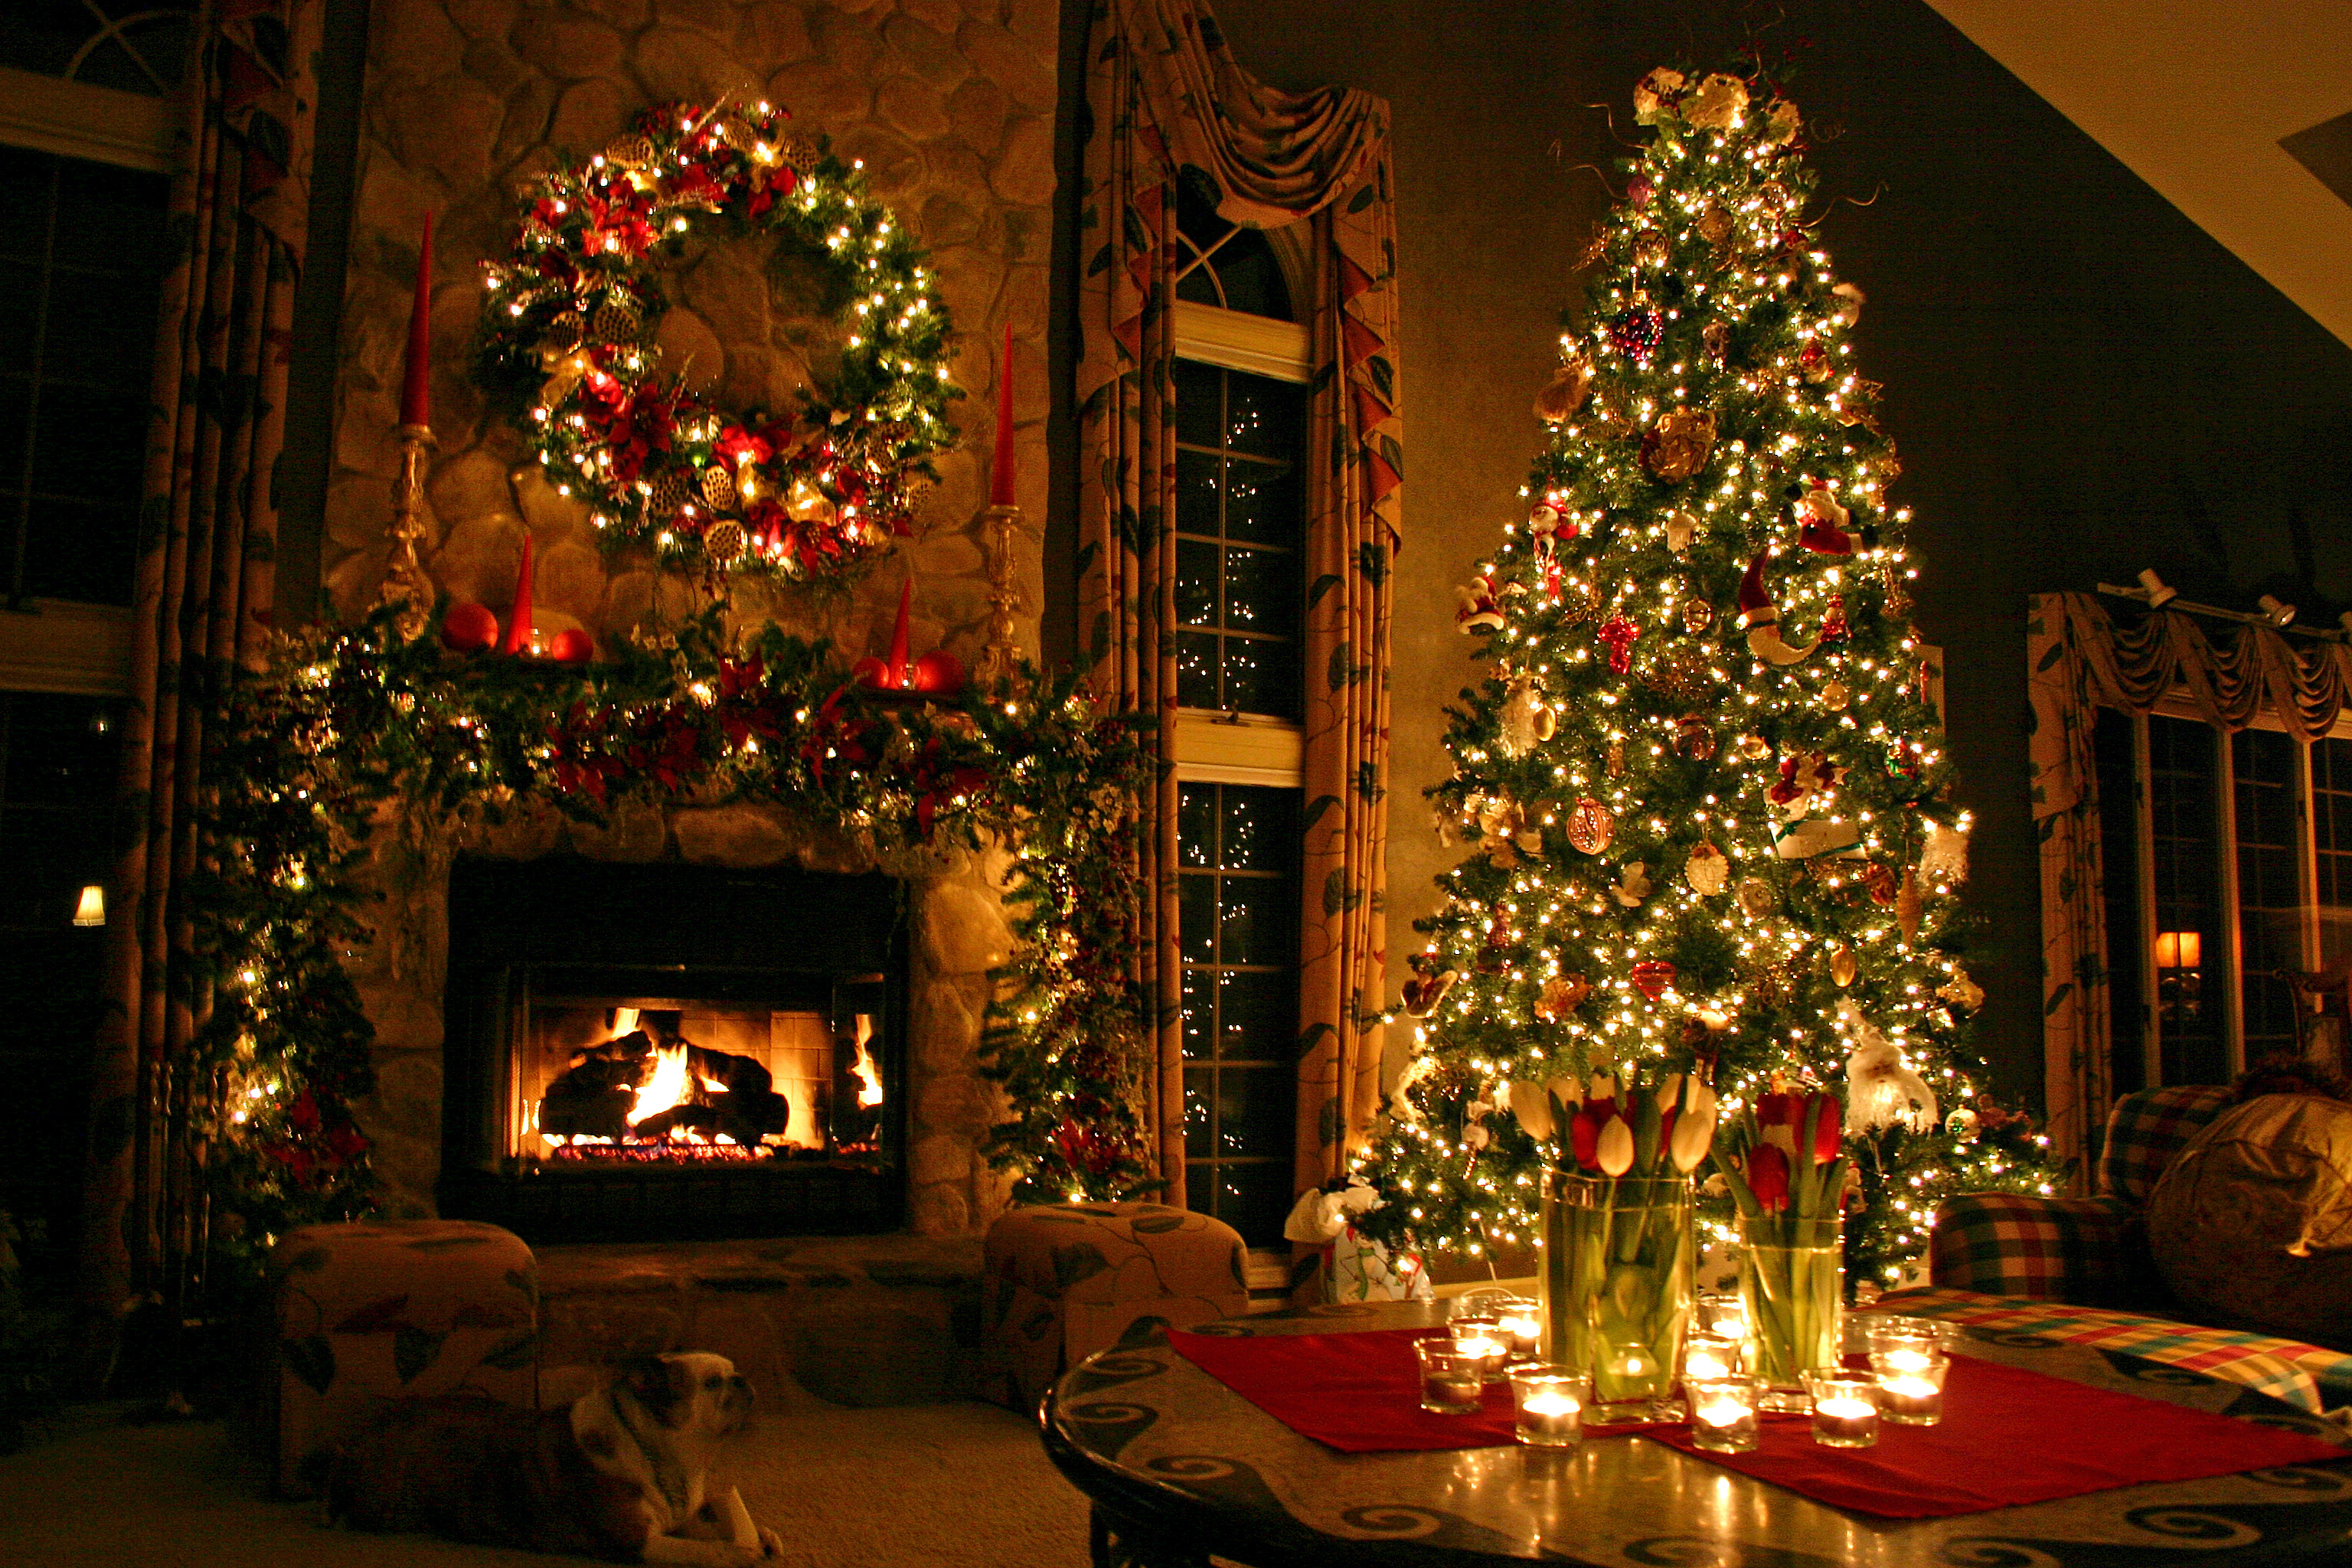 Best Christmas Trees.How To Find The Best Christmas Tree For Your Home Clickhowto